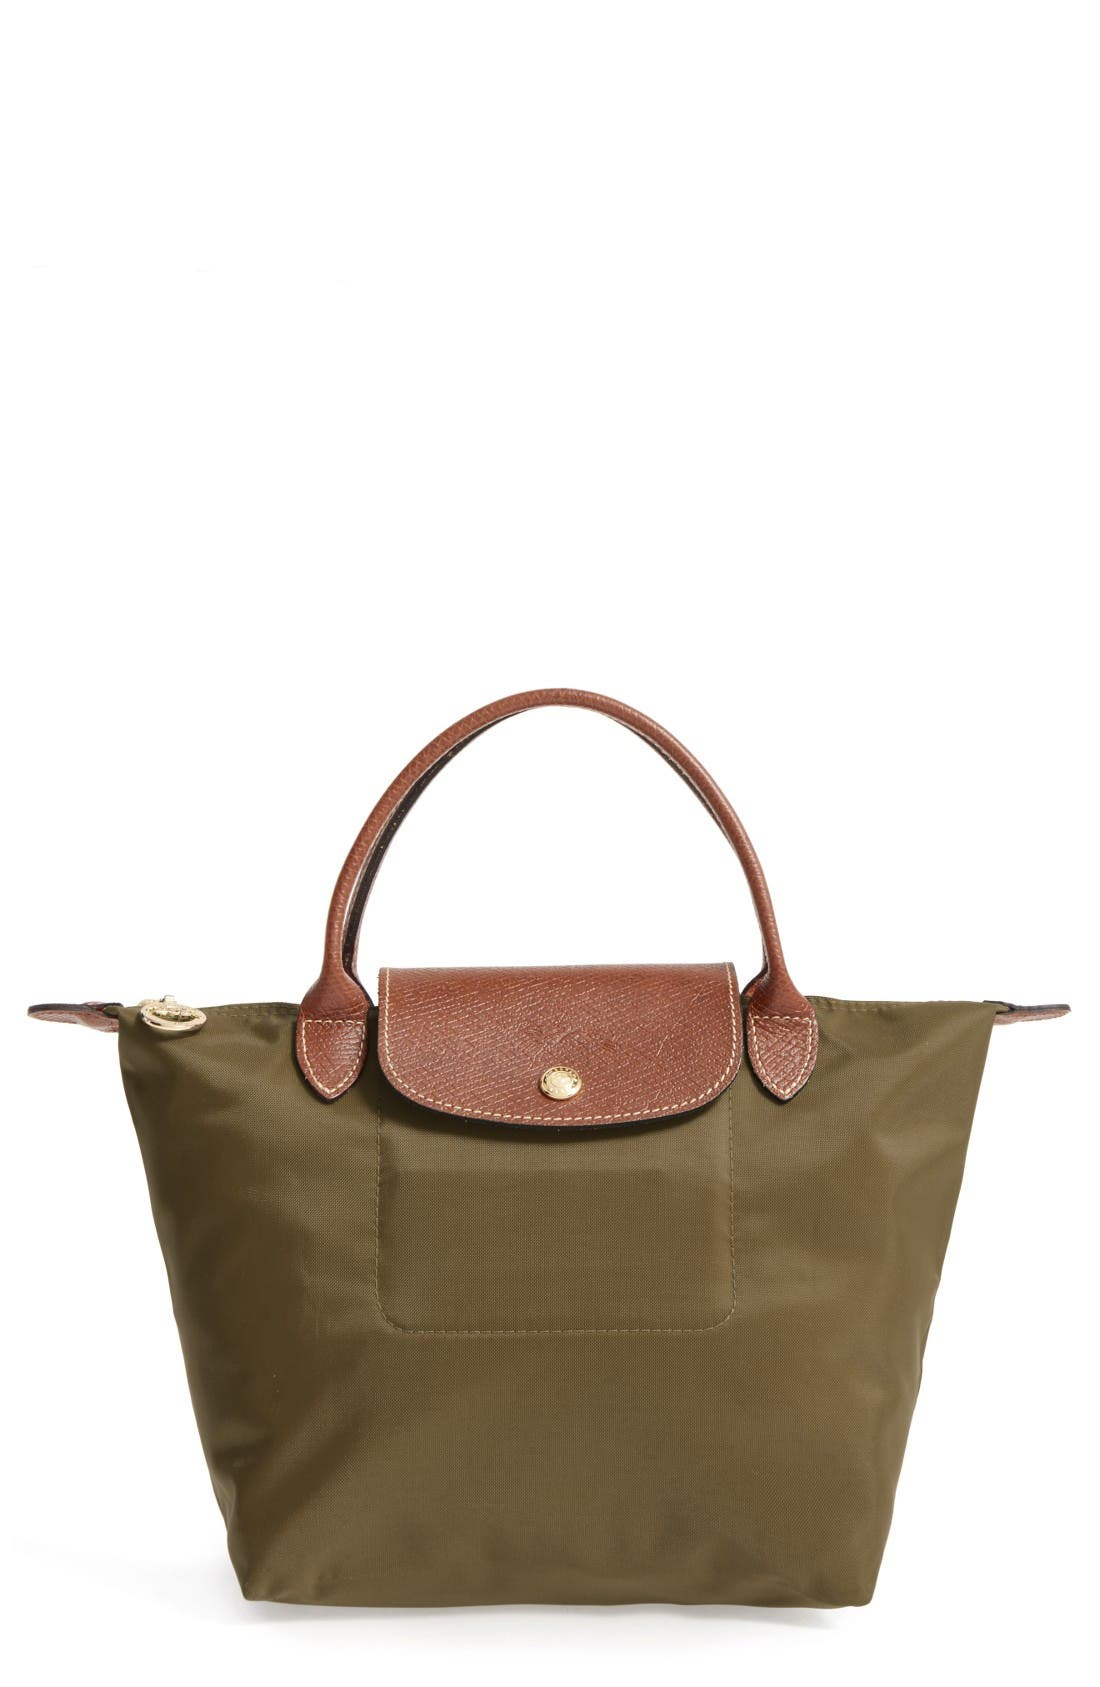 Main Image - Longchamp 'Mini Le Pliage' Handbag